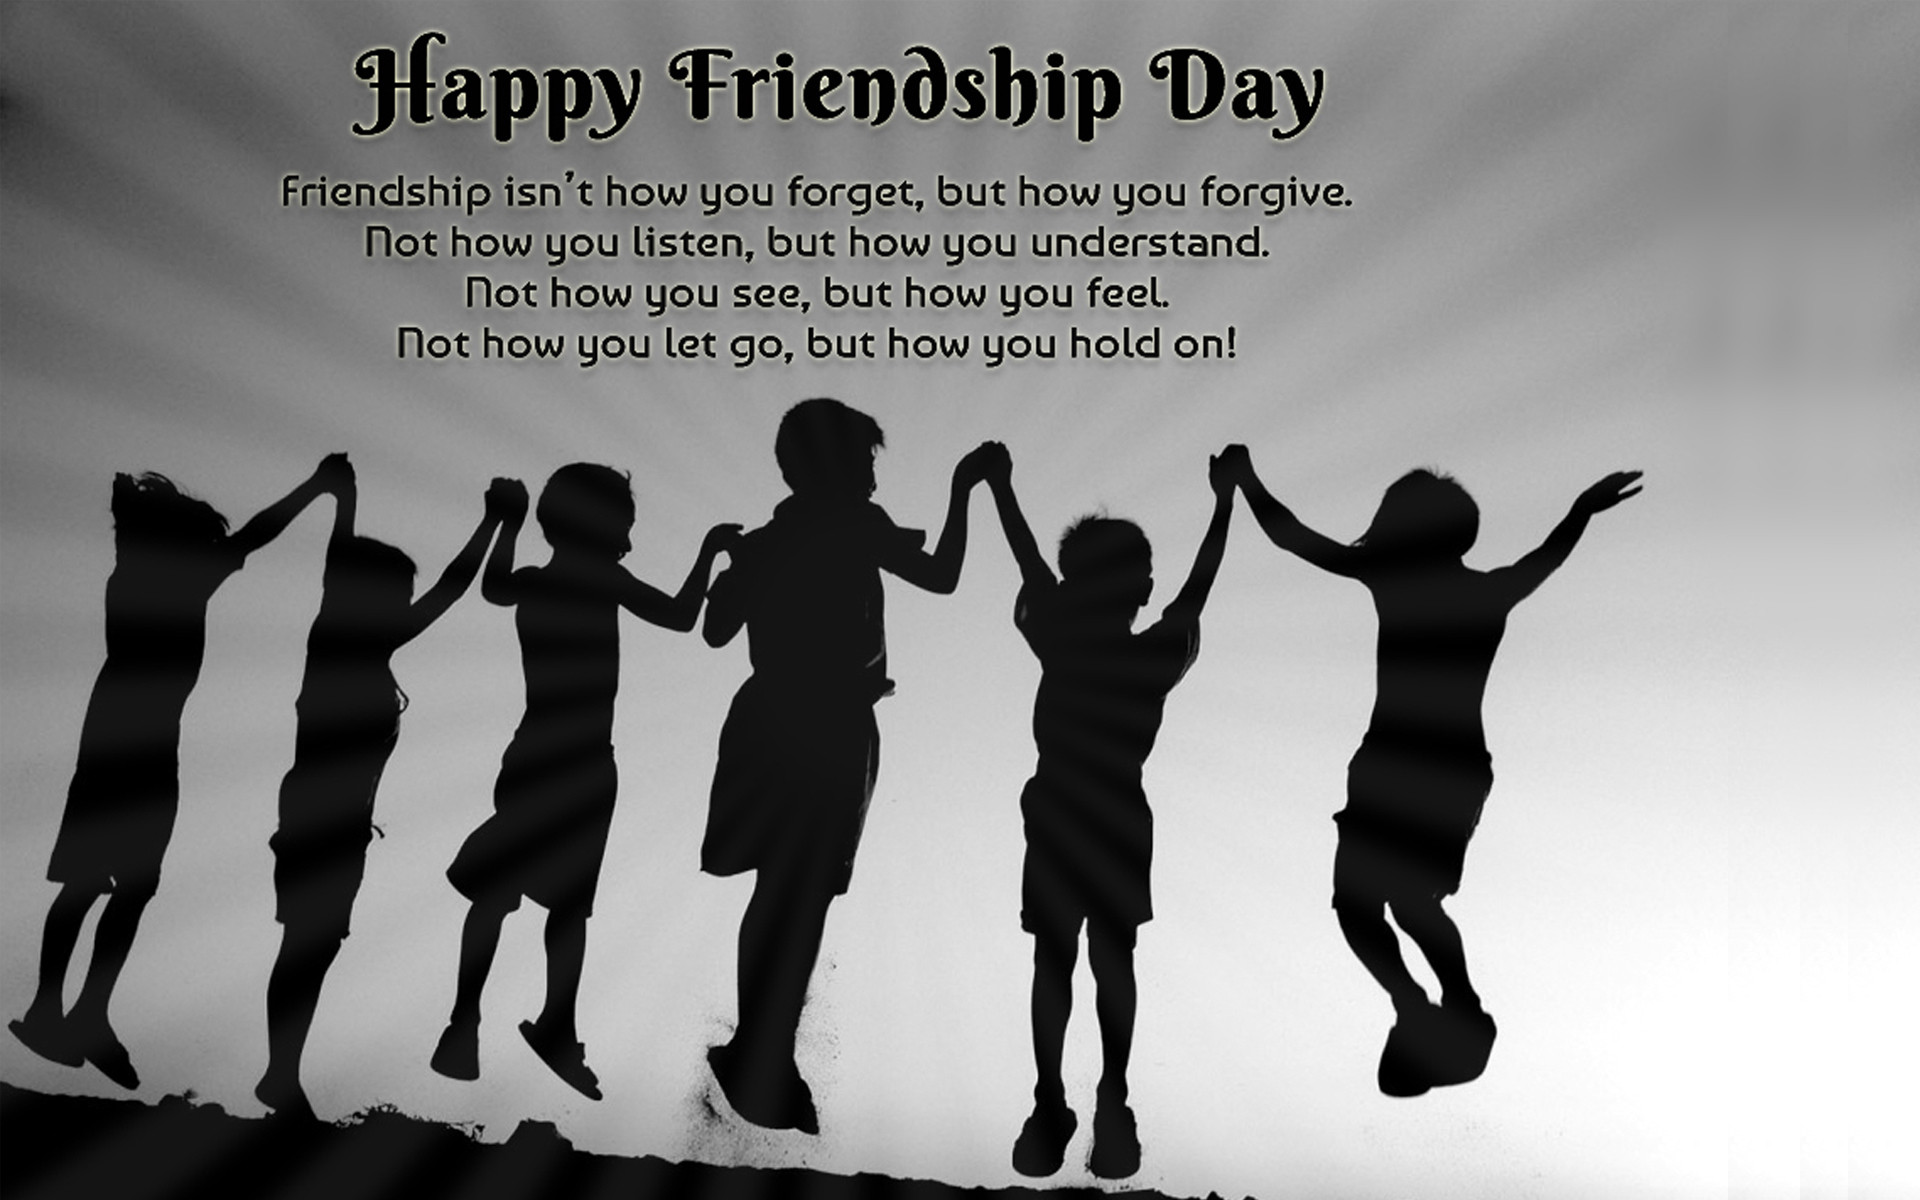 happy friendship day joyful wallpaper